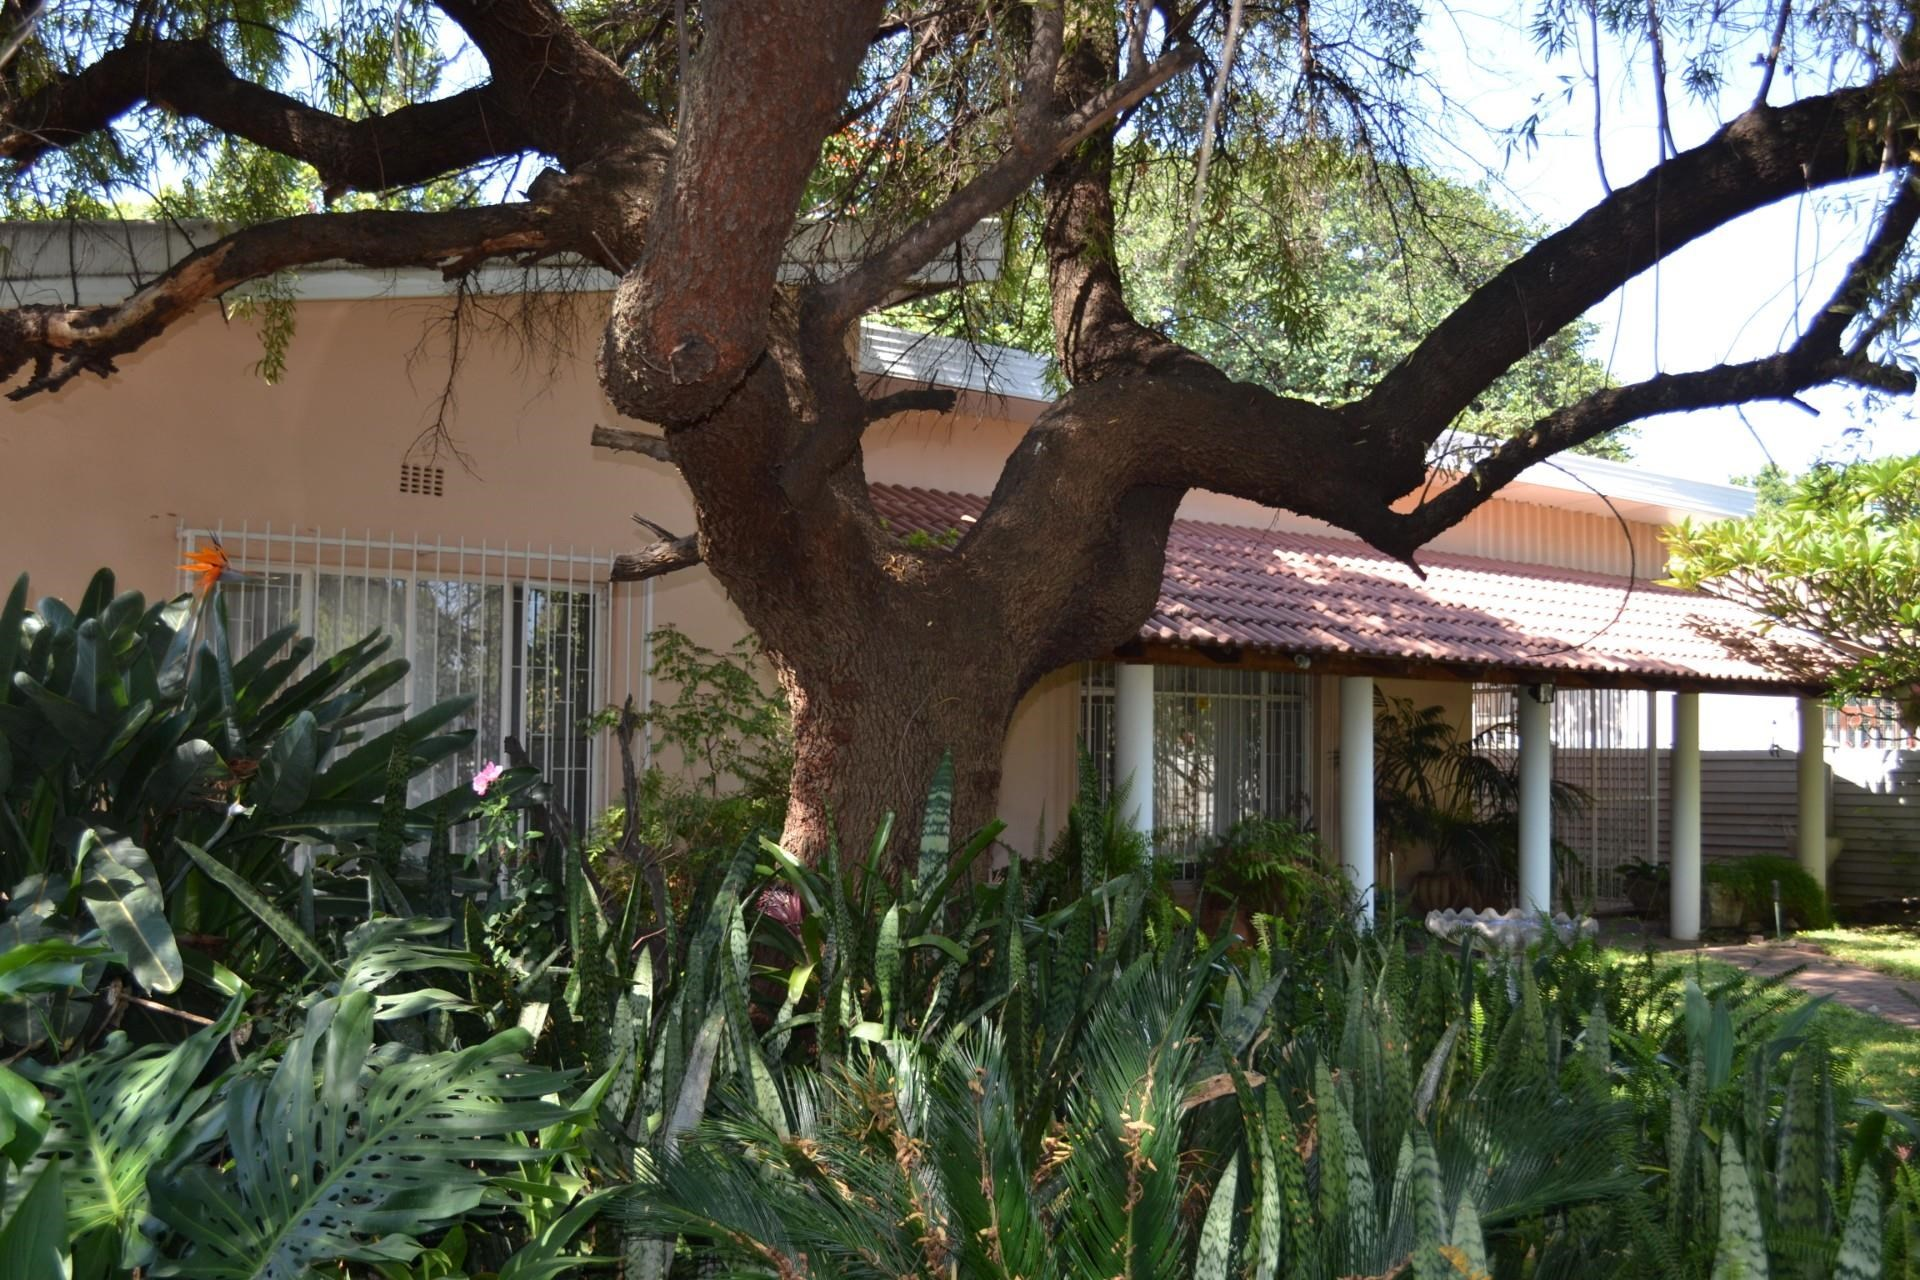 3 Bedroom House for Sale in Oos Einde